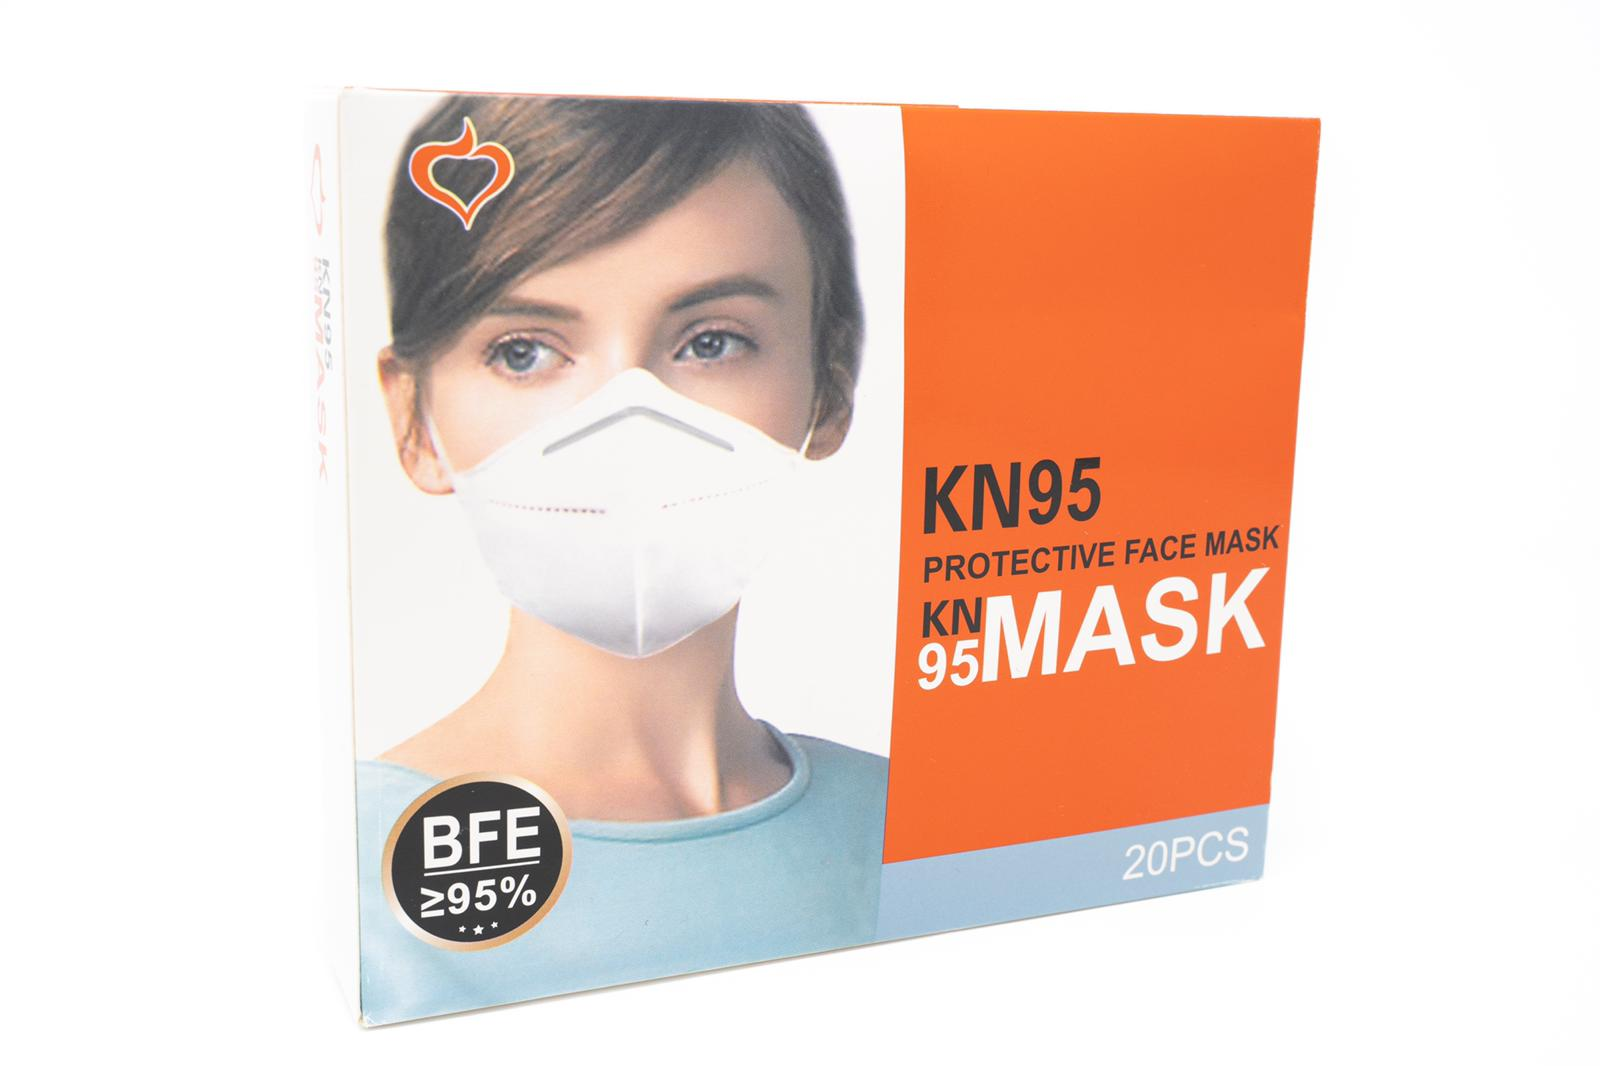 1000 pcs Brand new sealed Kn95 Mask - Image 2 of 3